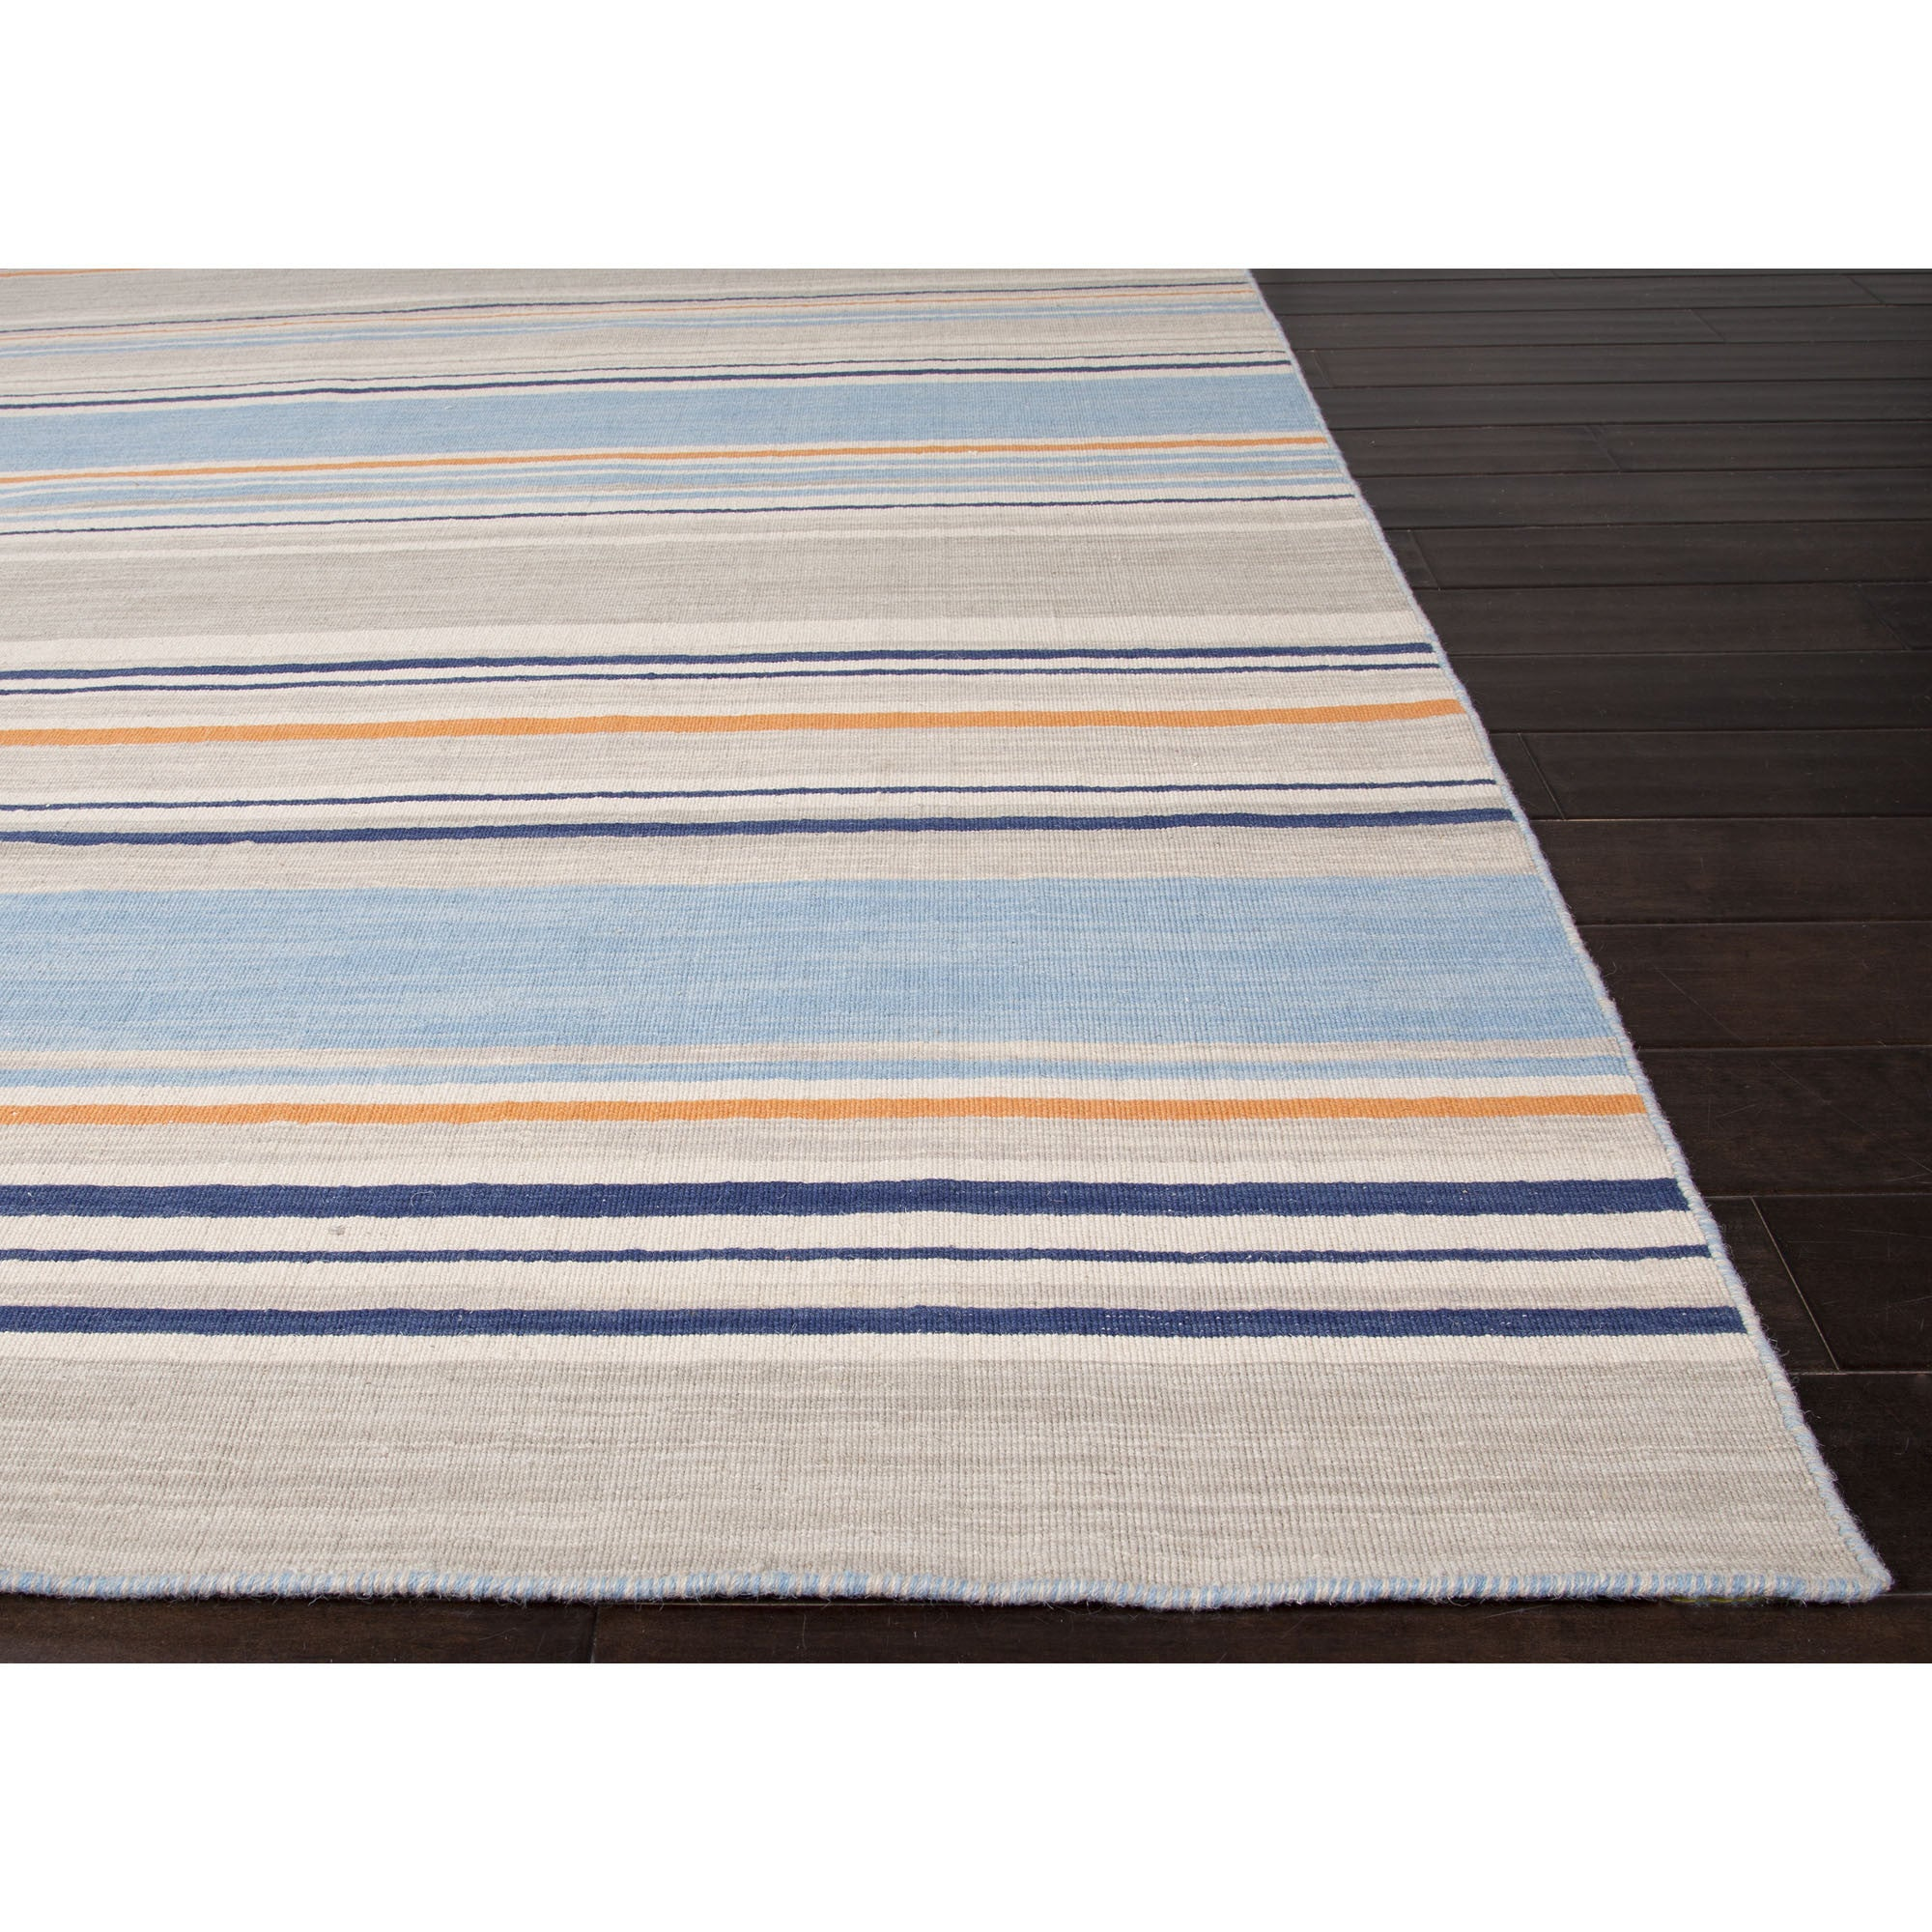 Jaipur Rugs Flatweave Stripe Pattern Blue Orange Wool Area